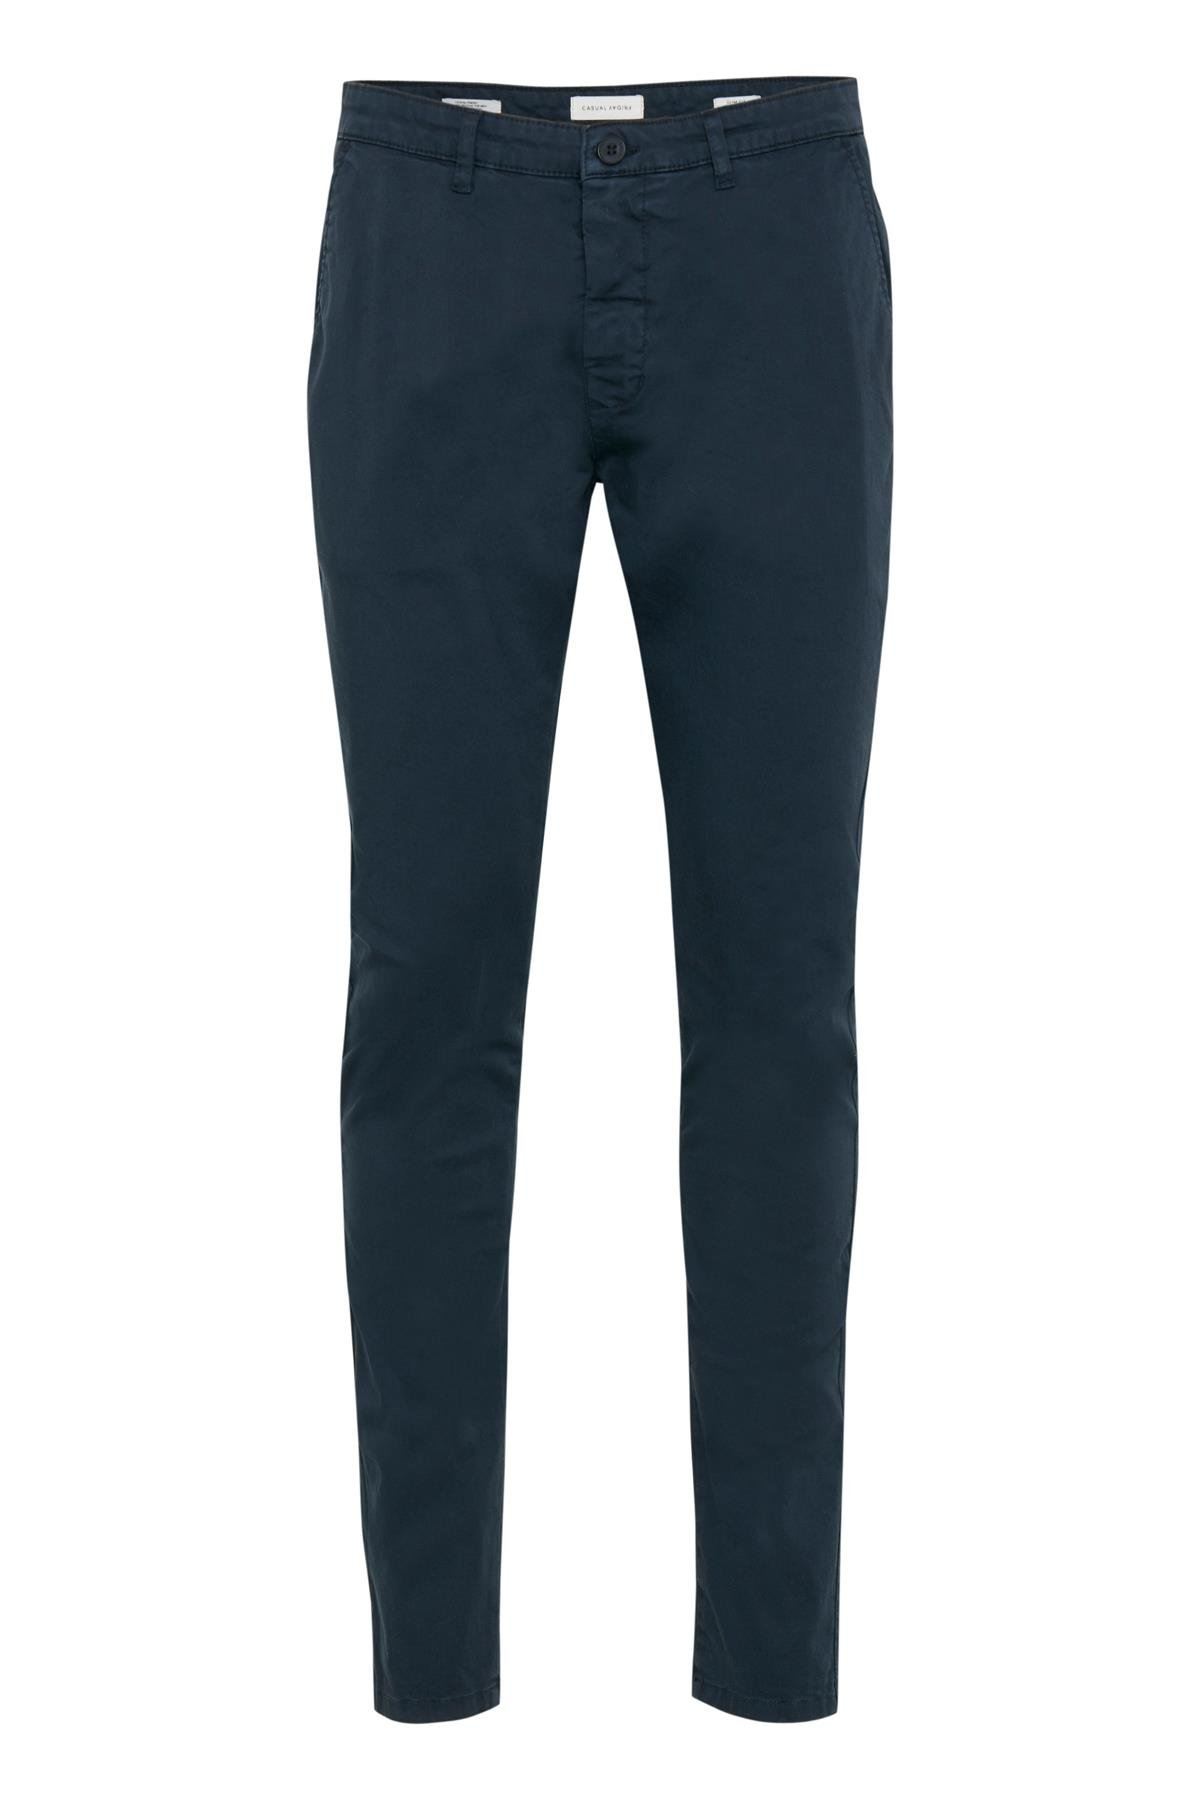 Image of Casual Friday Herre Slim-fit chinos - Marineblå